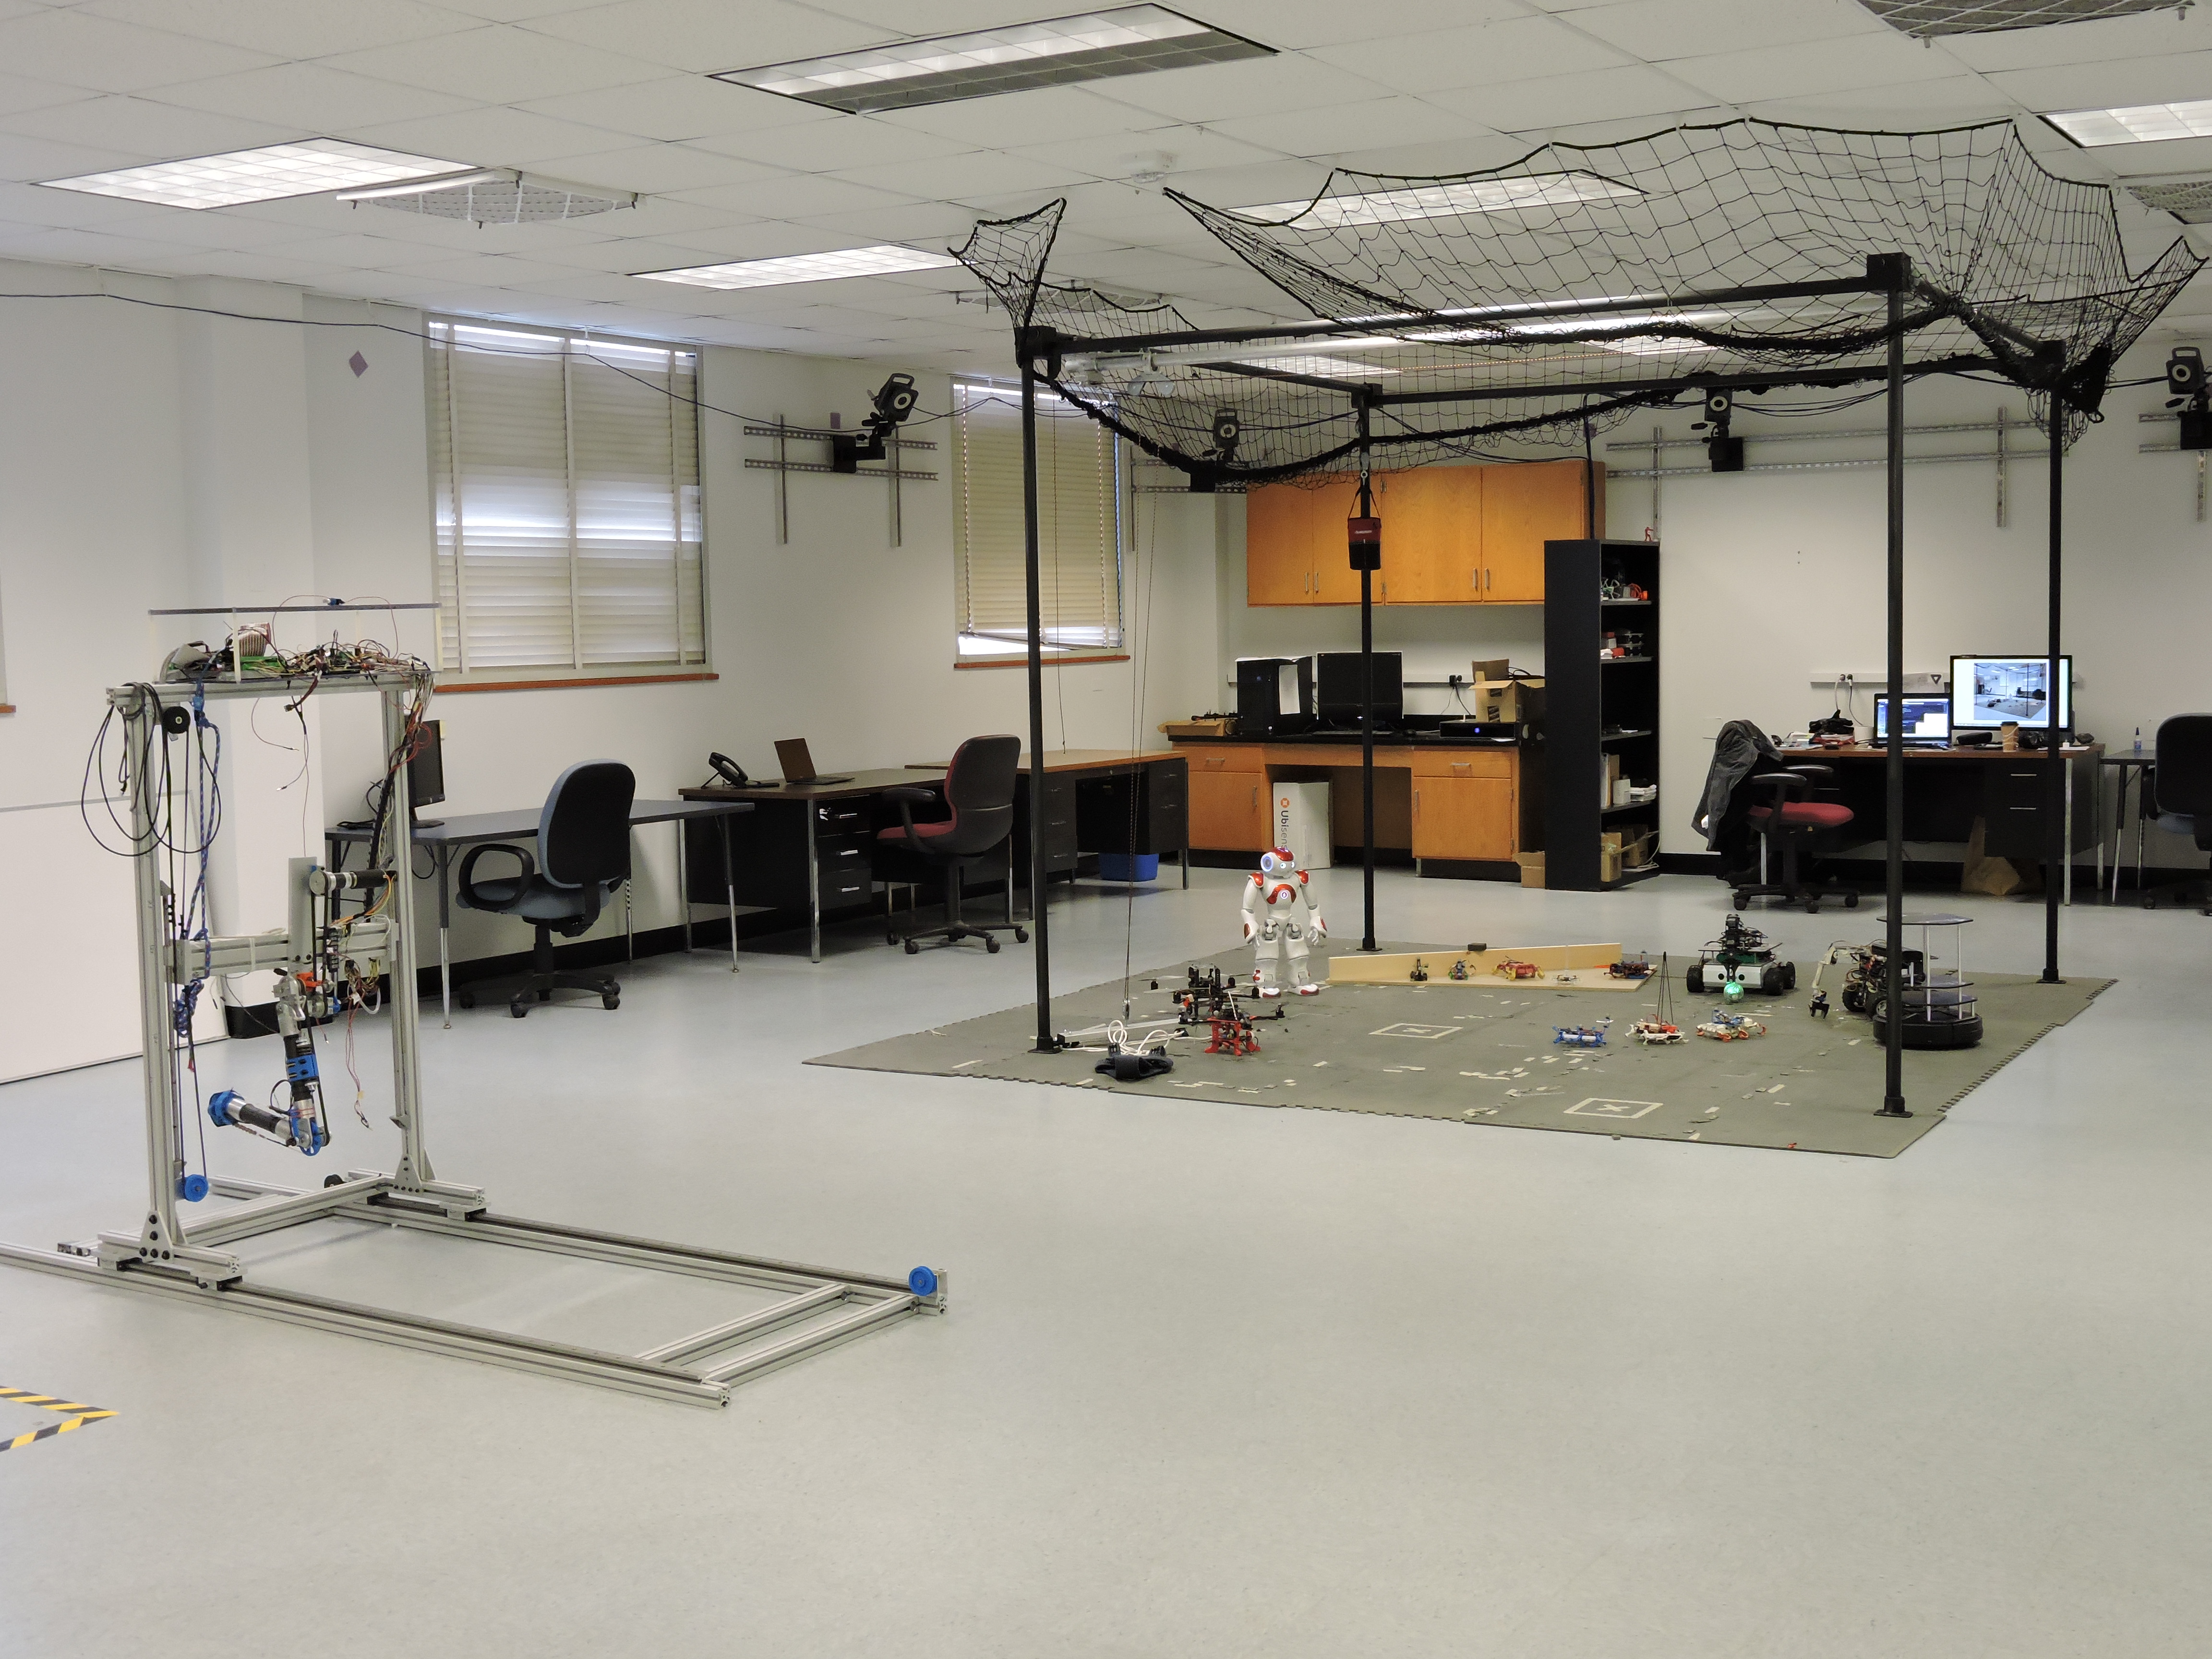 Over 900 square feet of lab space is devoted to robotics and control research